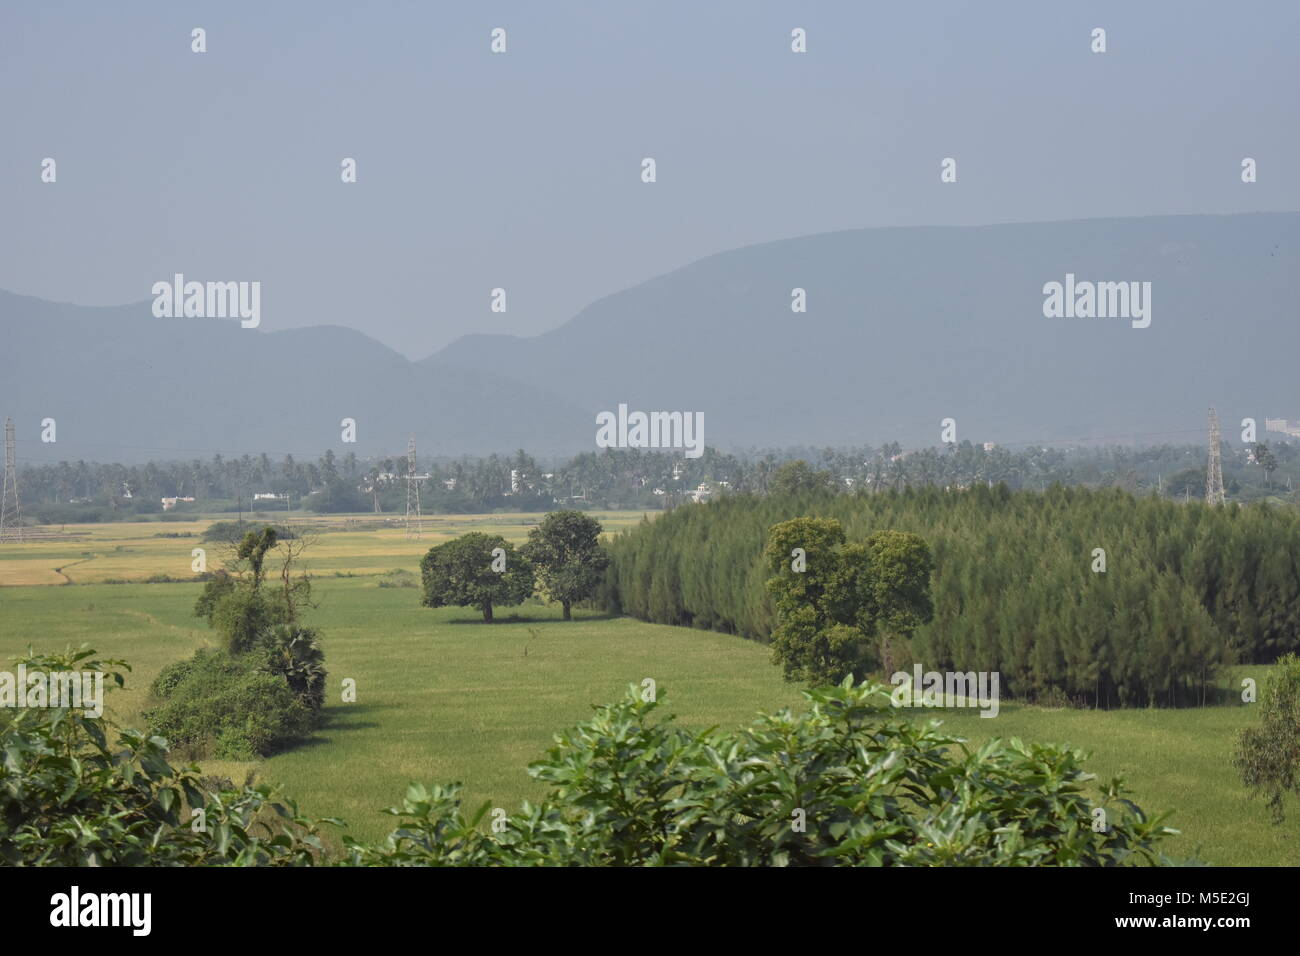 awesome scenery of grass field with casuarina trees. - Stock Image